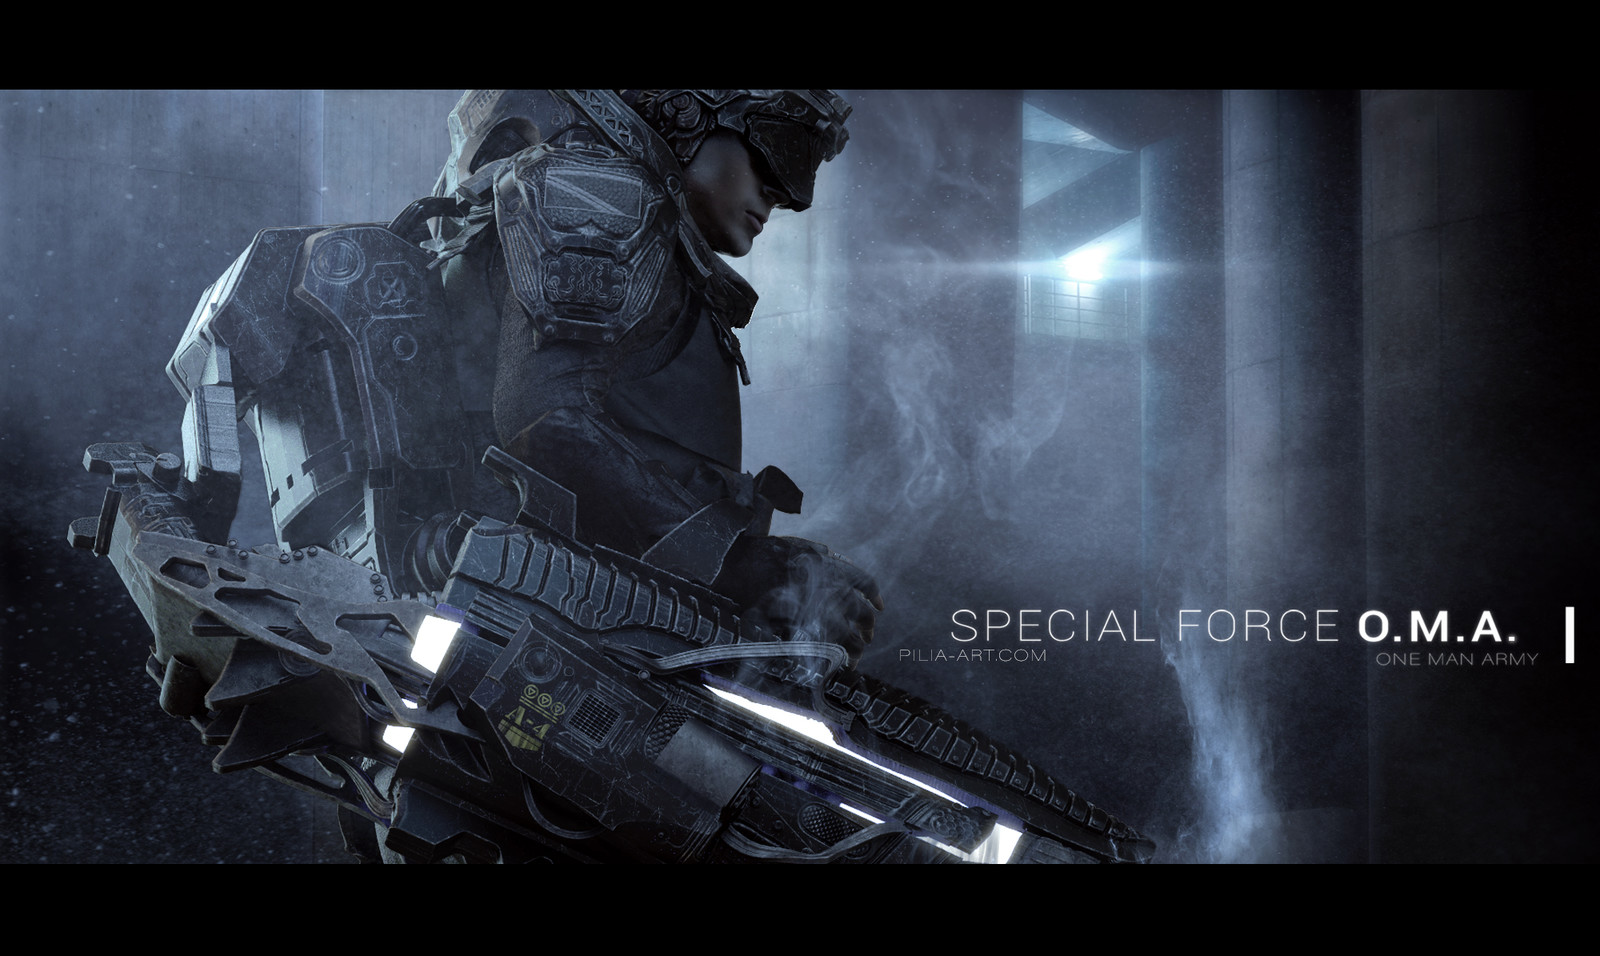 Special Force O.M.A. 03